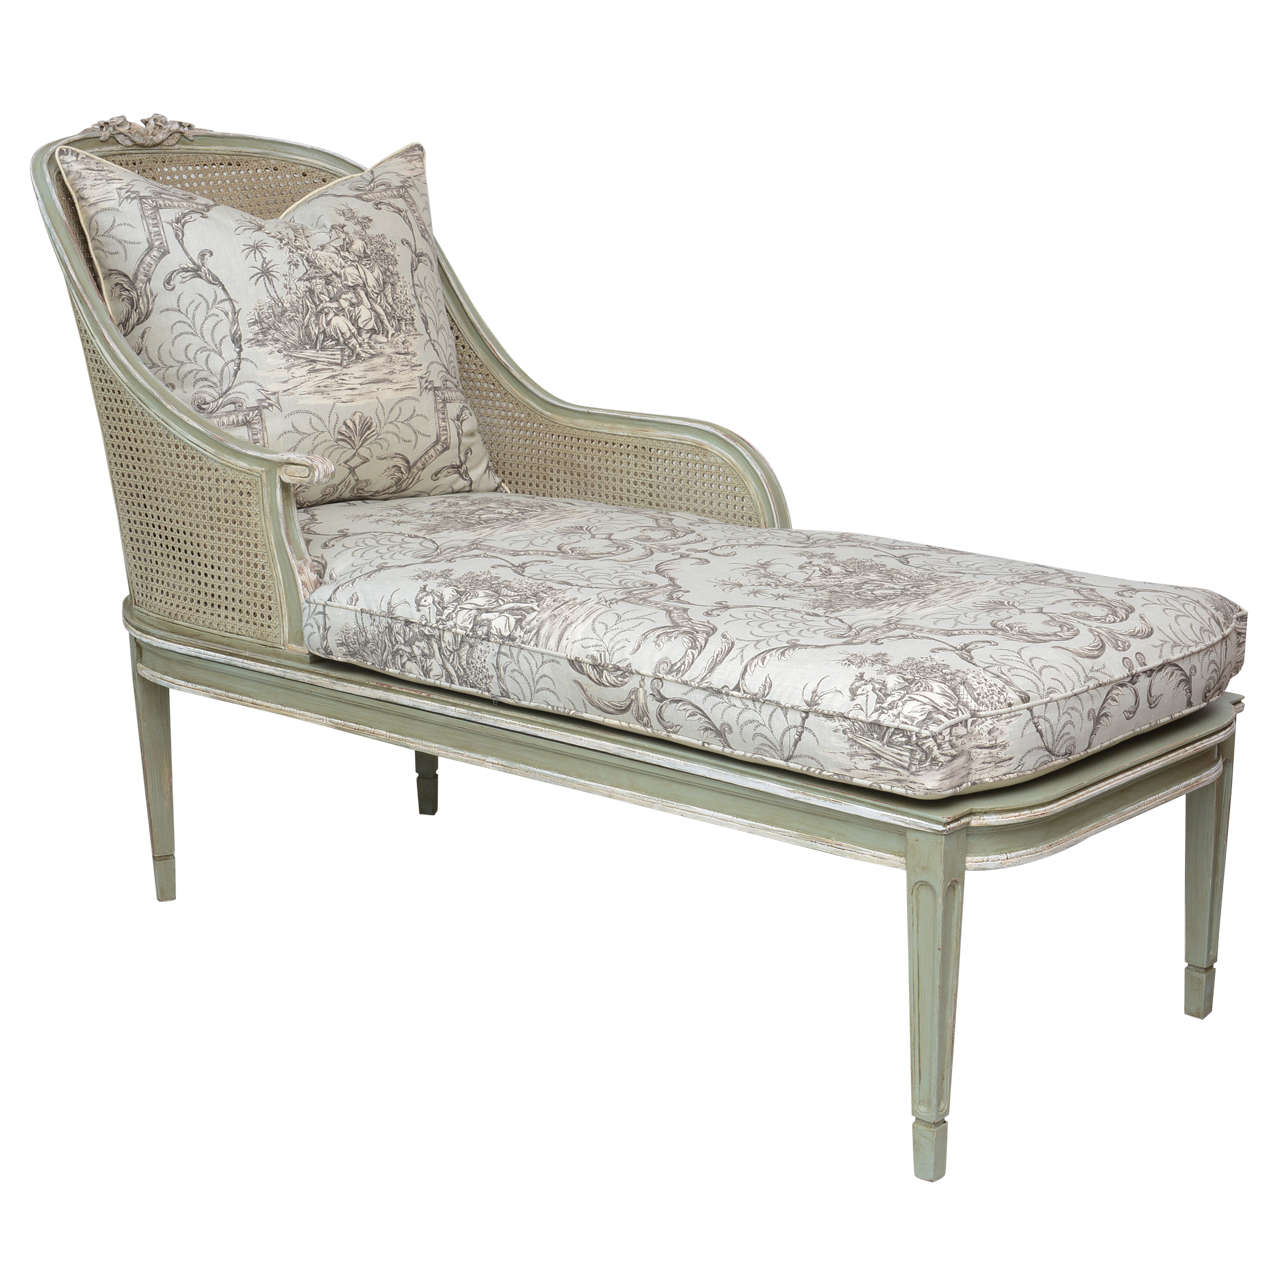 Louis XVI Style French Caned Chaise Lounge 1  sc 1 st  1stDibs : french chaise lounge chair - Sectionals, Sofas & Couches